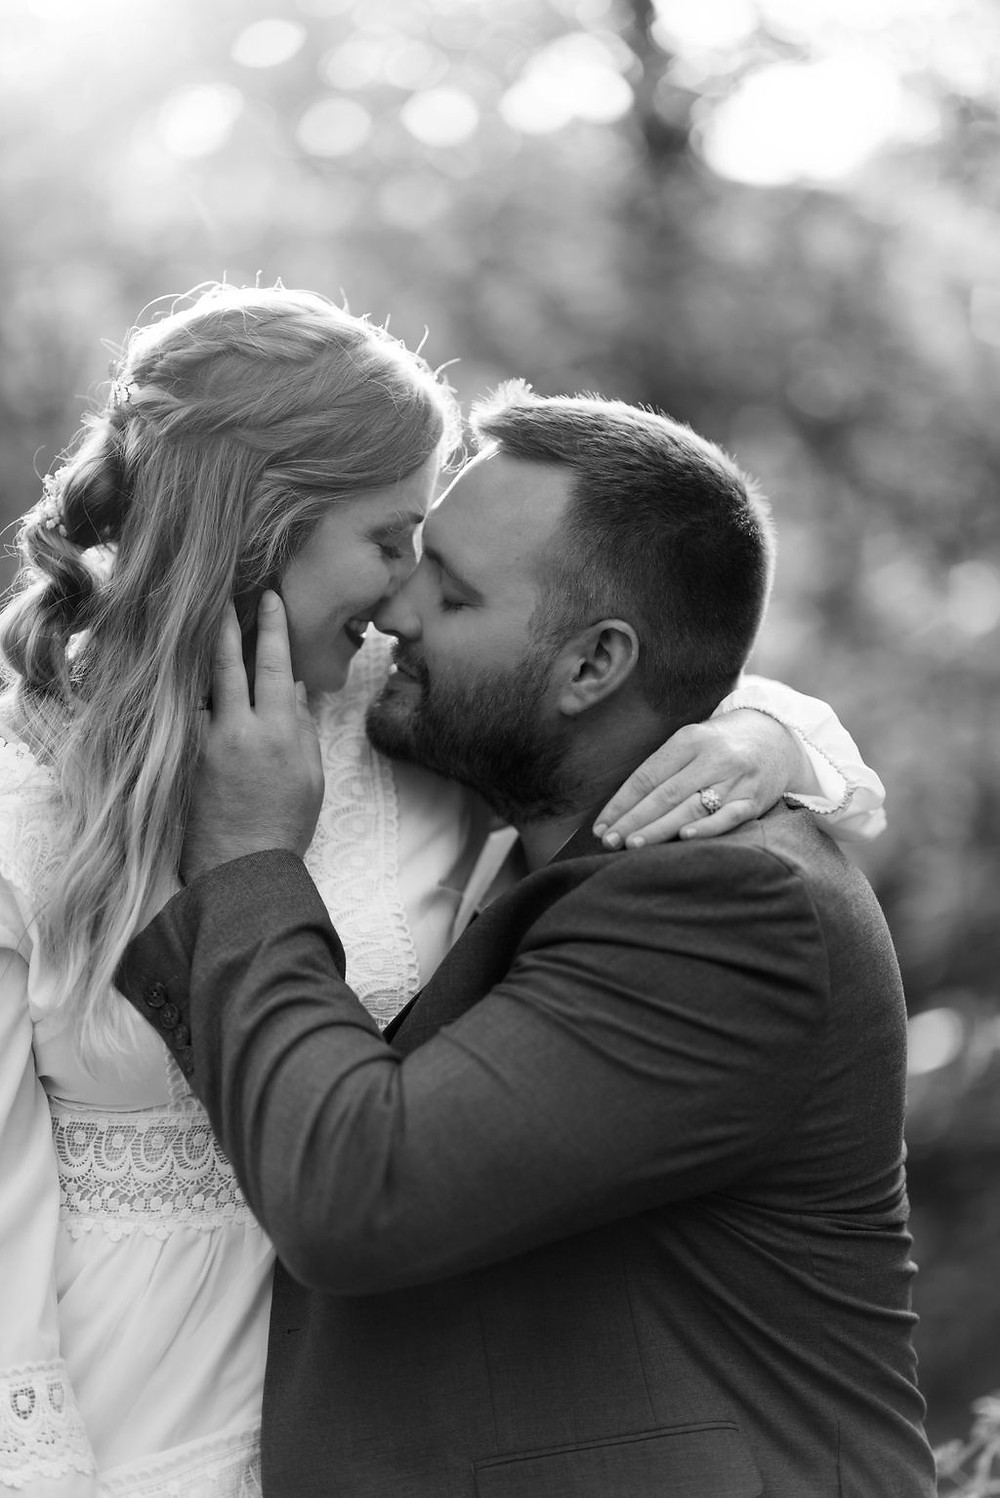 close up photo of a bride and groom with their foreheads together. they are about to kiss. the groom has his hand on the bride's face